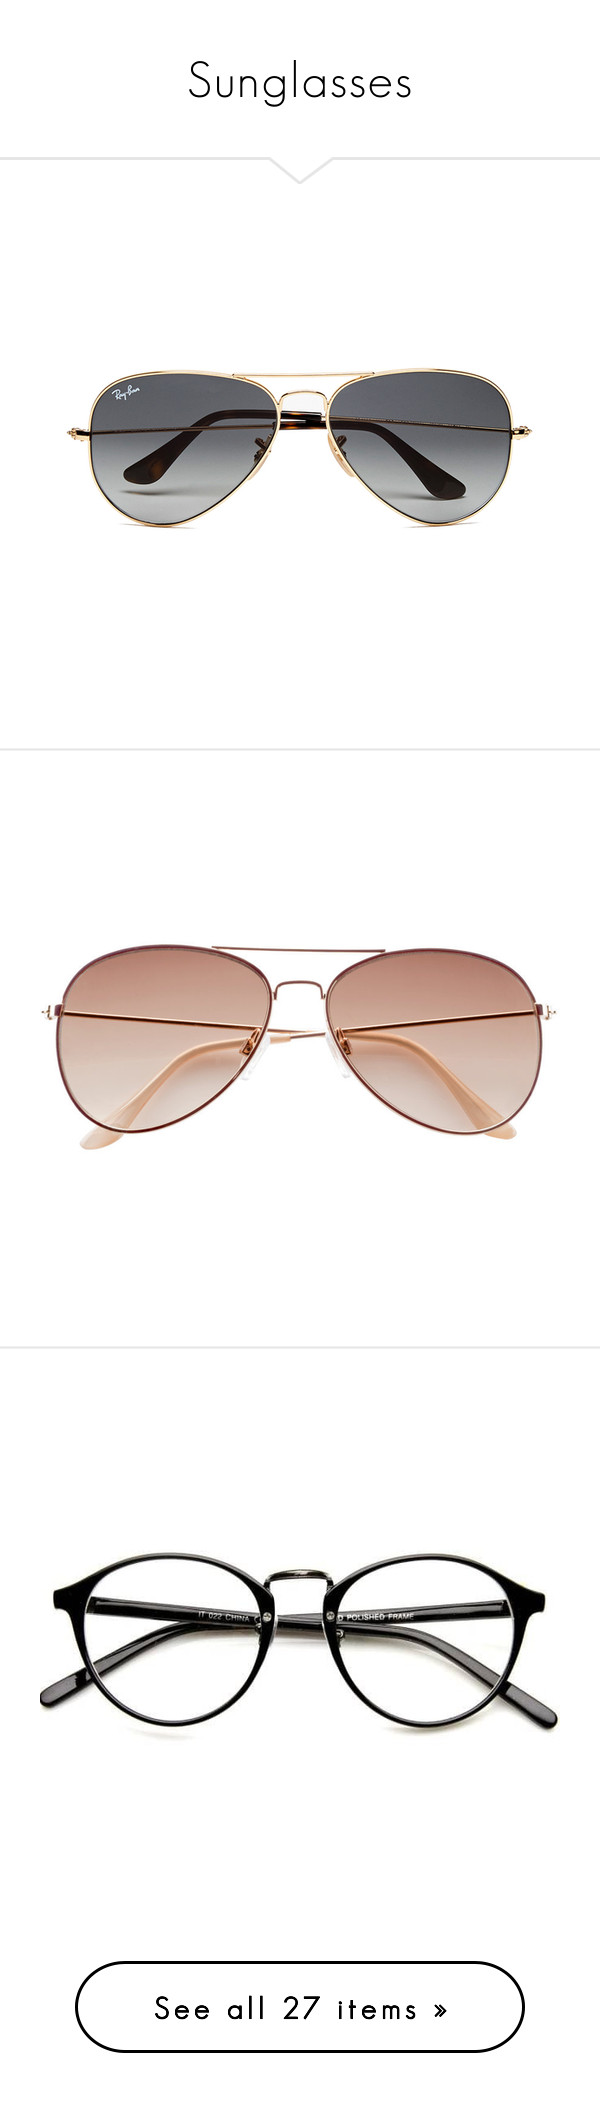 """Sunglasses"" by isabel-harsh ❤ liked on Polyvore featuring men's fashion, men's accessories, men's eyewear, men's sunglasses, accessories, men, glasses, sunglasses, men's wear and mens gold aviator sunglasses"